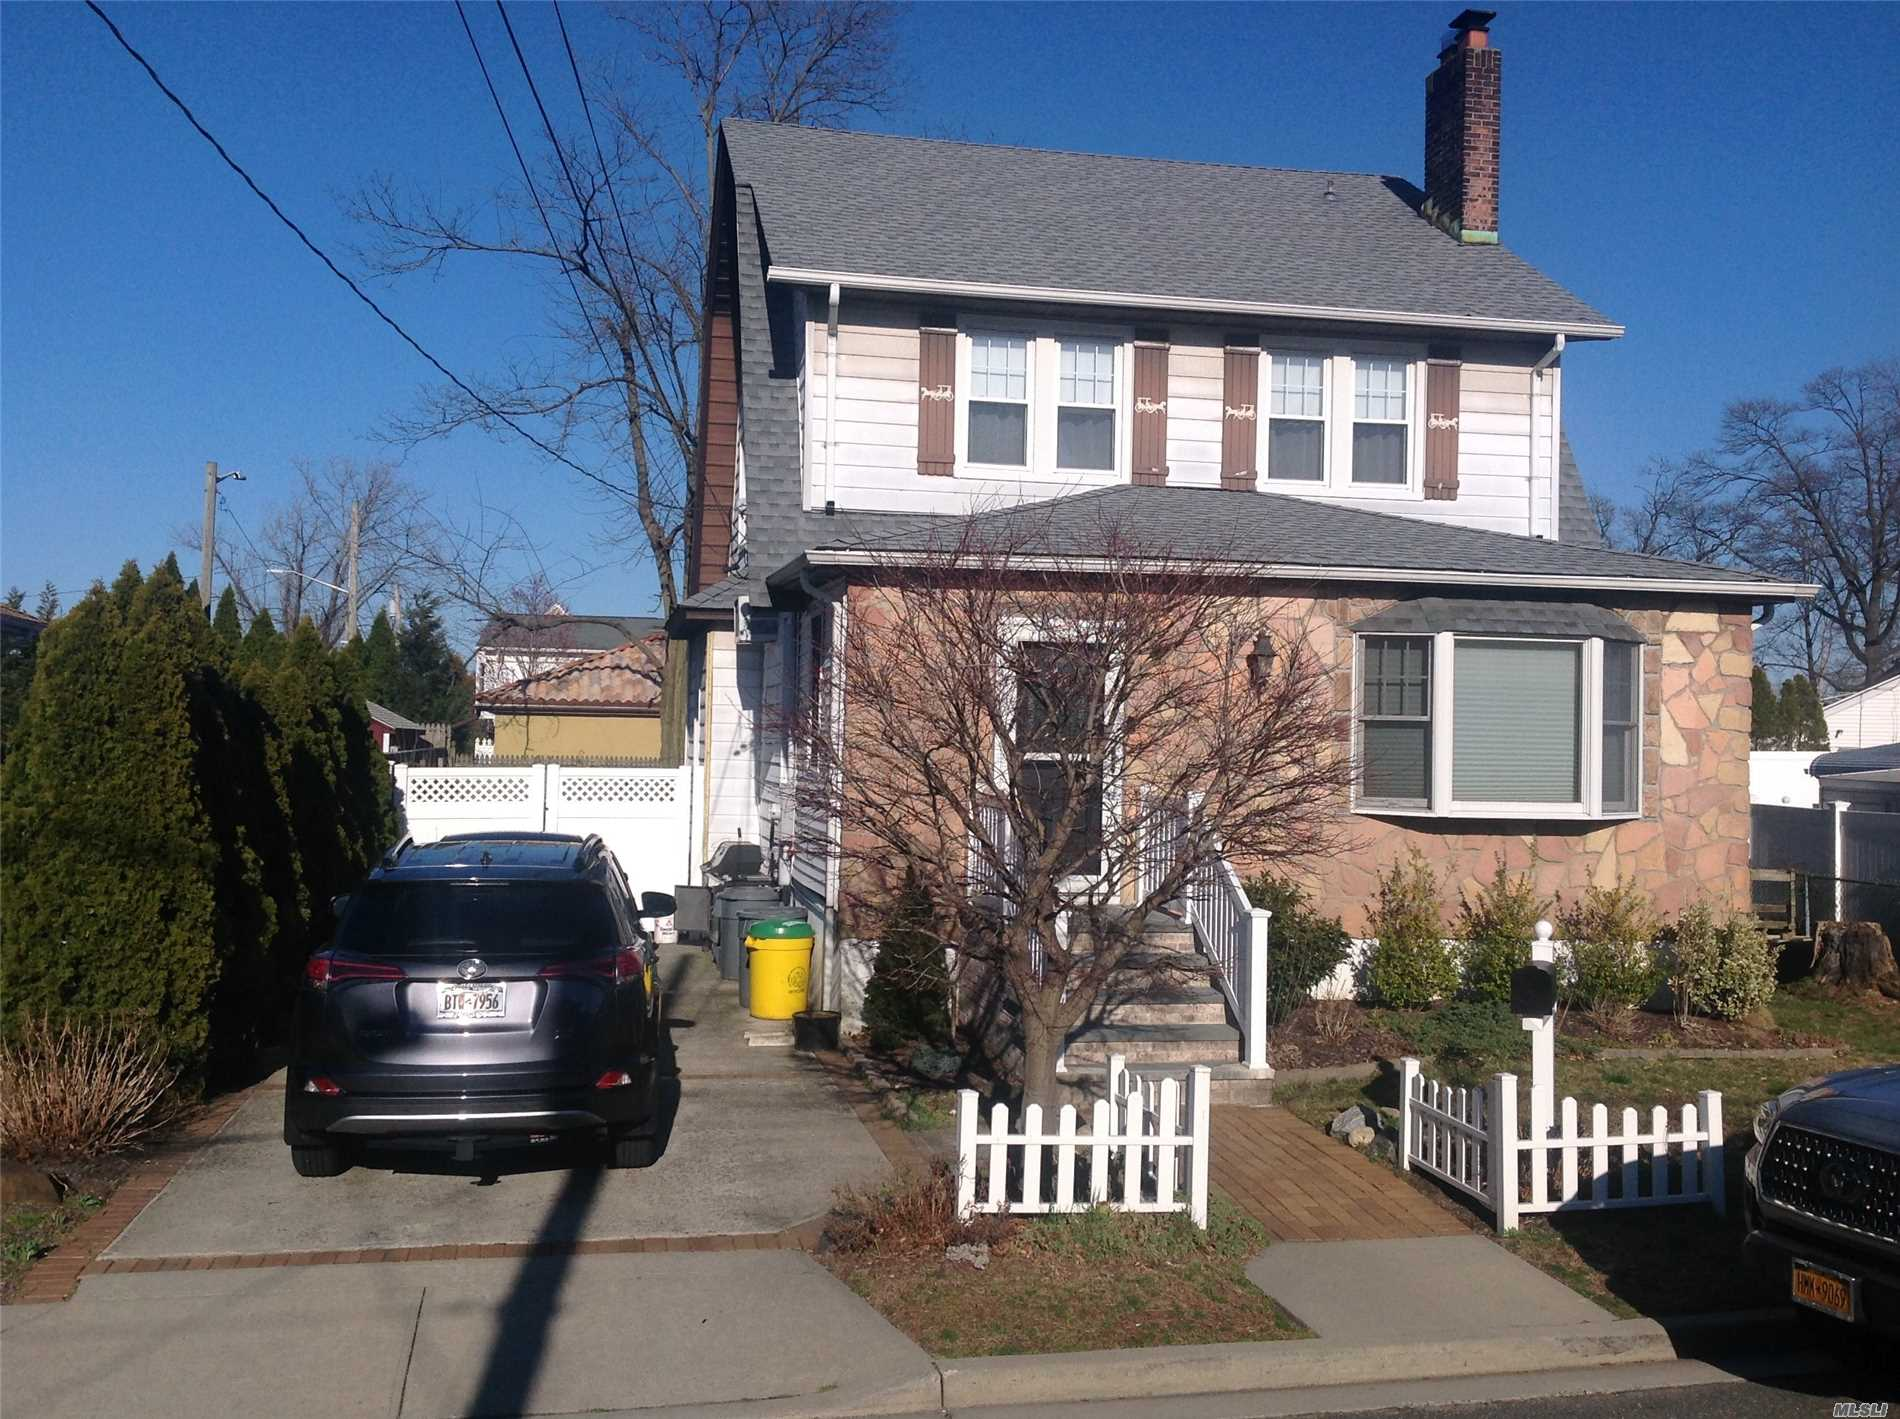 Charming Colonial in prime location with easy walk to houses of worship. New roof. Potential galore! Call to see this home today!